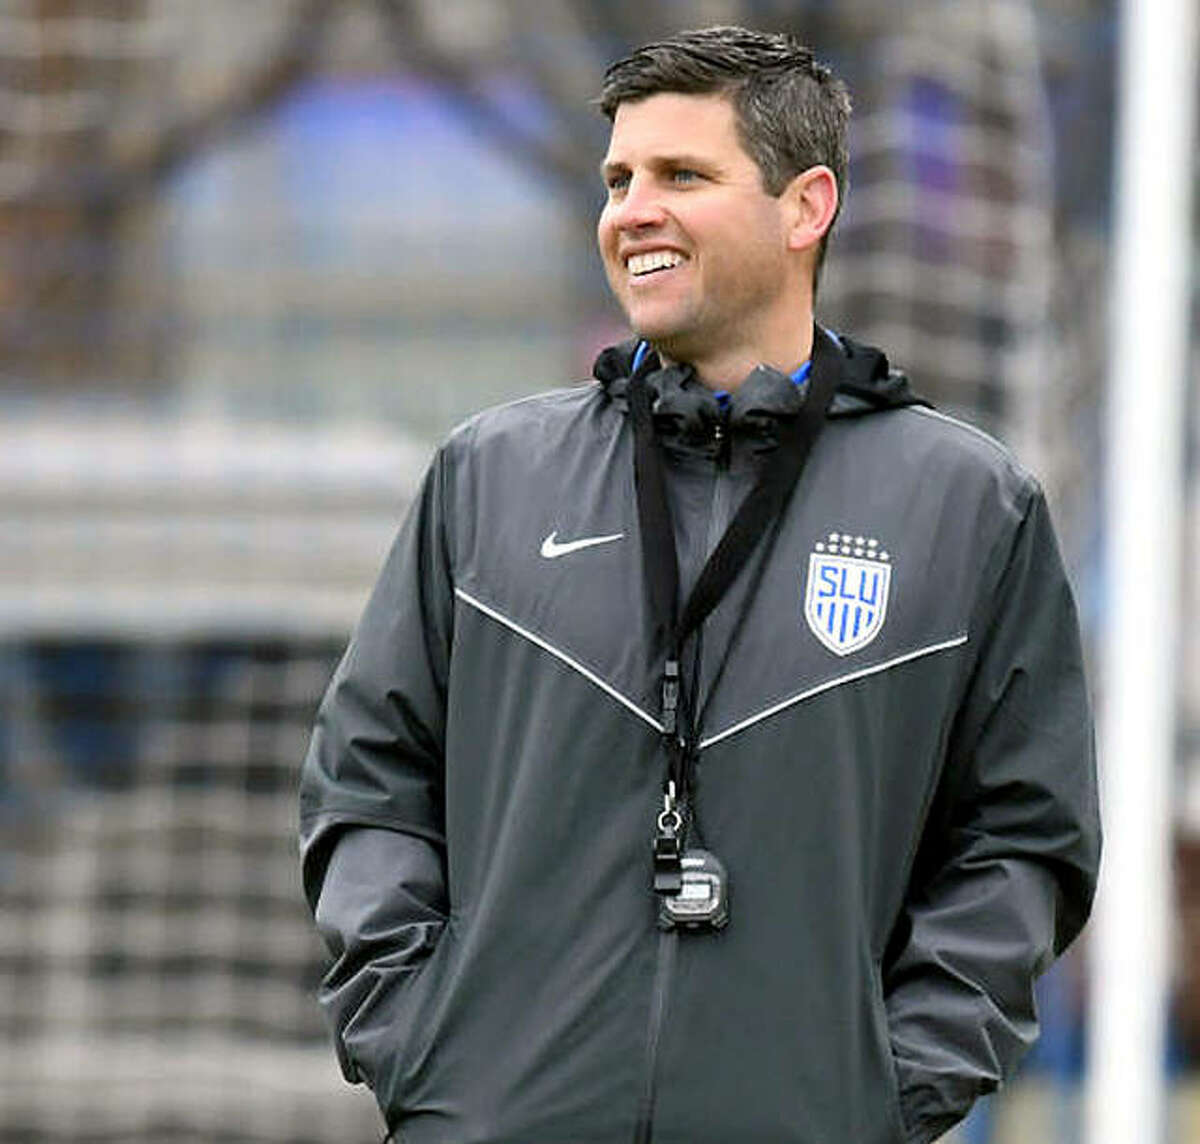 Saint Louis University men's soccer coach Kevin Kalish has announced the Billikens fall 2021 schedule. Kalish is a former head coach at SIUE.